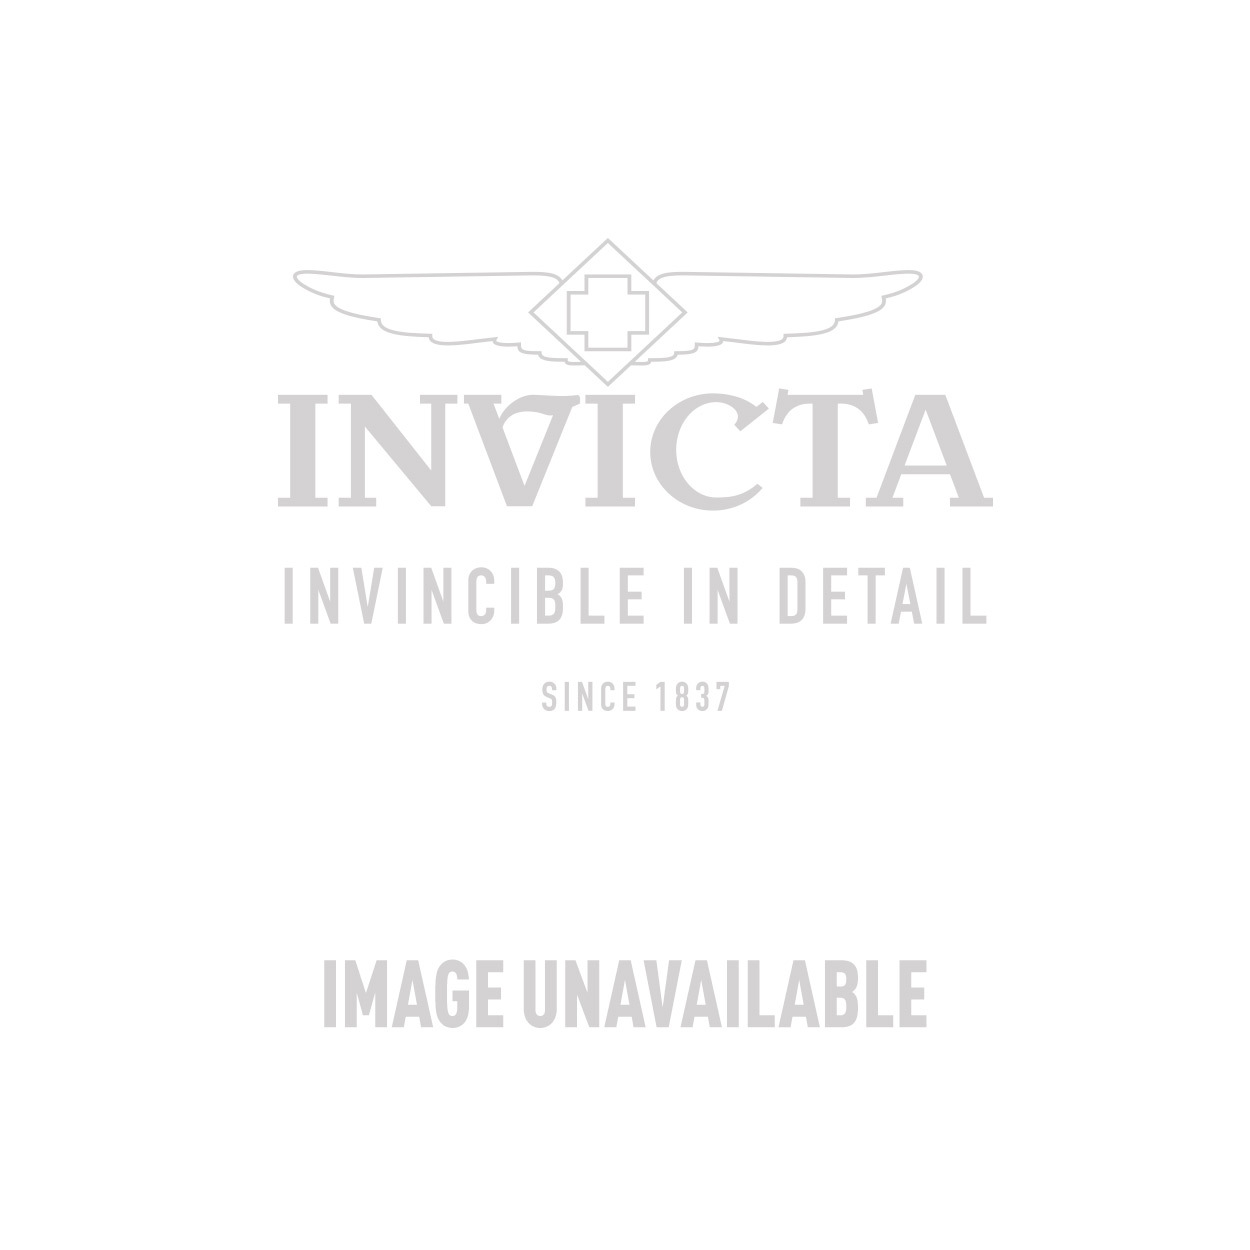 Invicta Specialty Swiss Movement Quartz Watch - Stainless Steel case Stainless Steel band - Model 20486